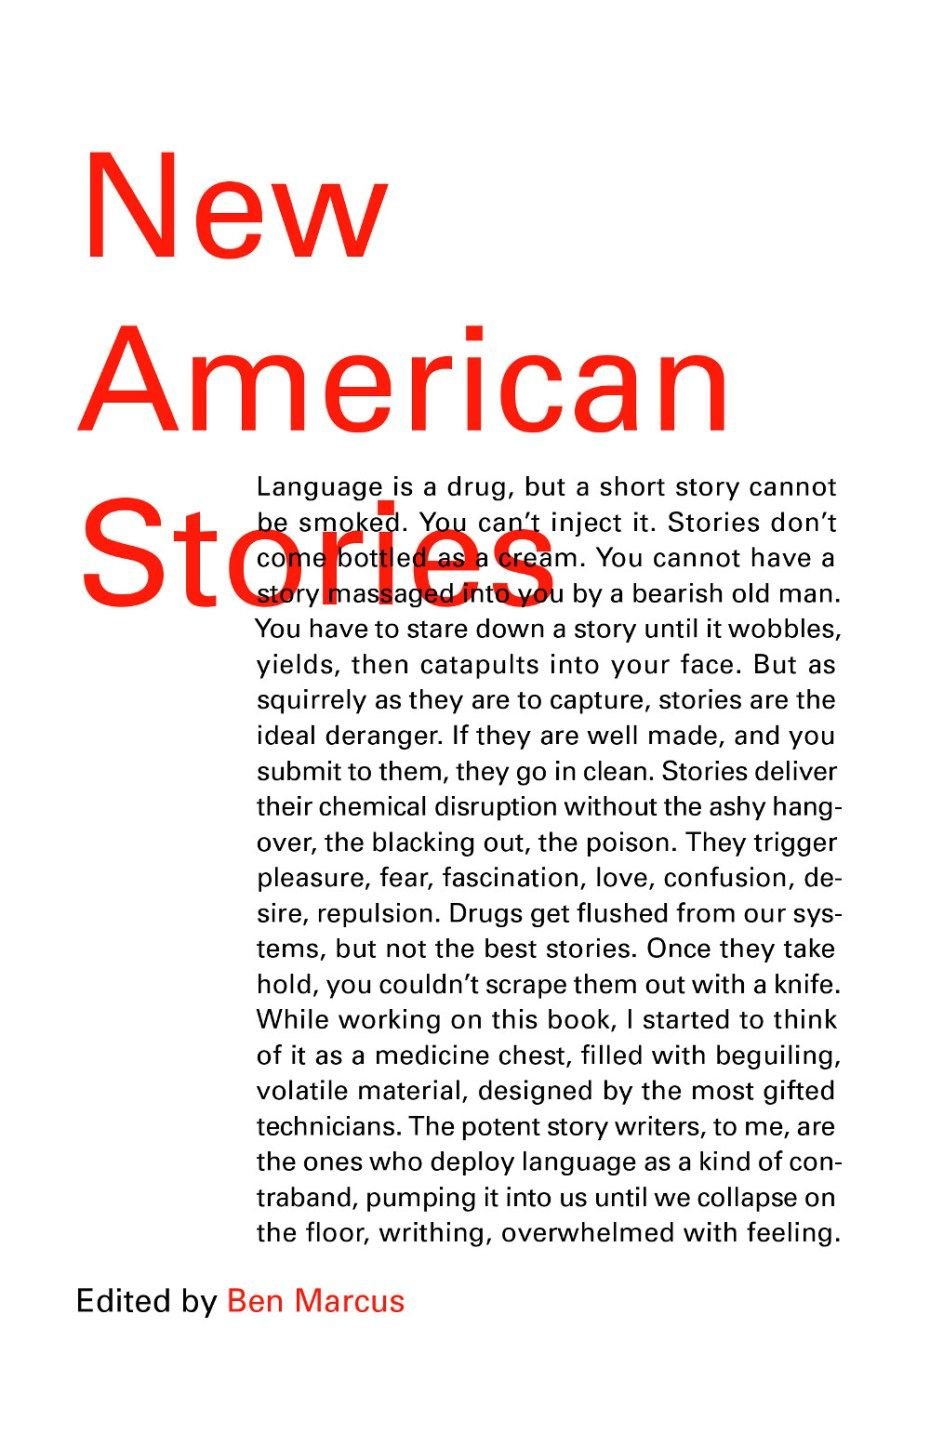 New American Stories design by Peter Mendelsund.